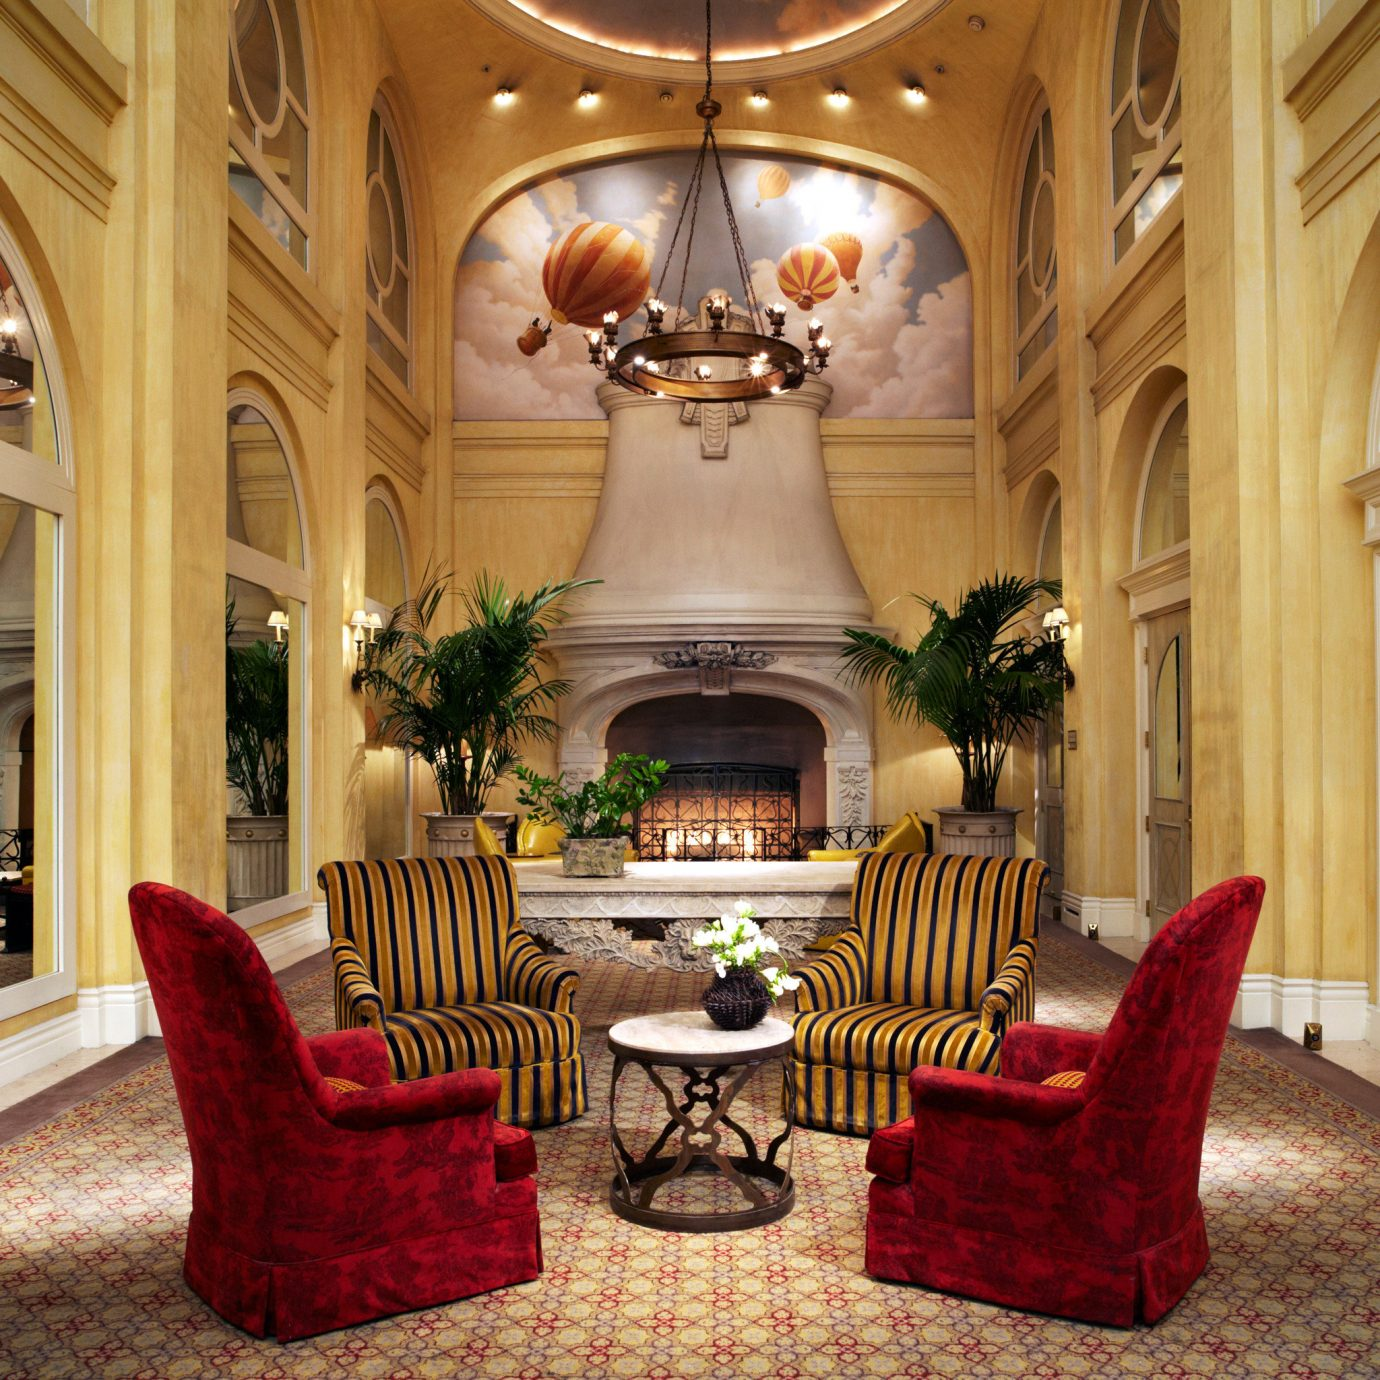 Boutique City Cultural Hip Lobby Lounge property living room mansion home palace